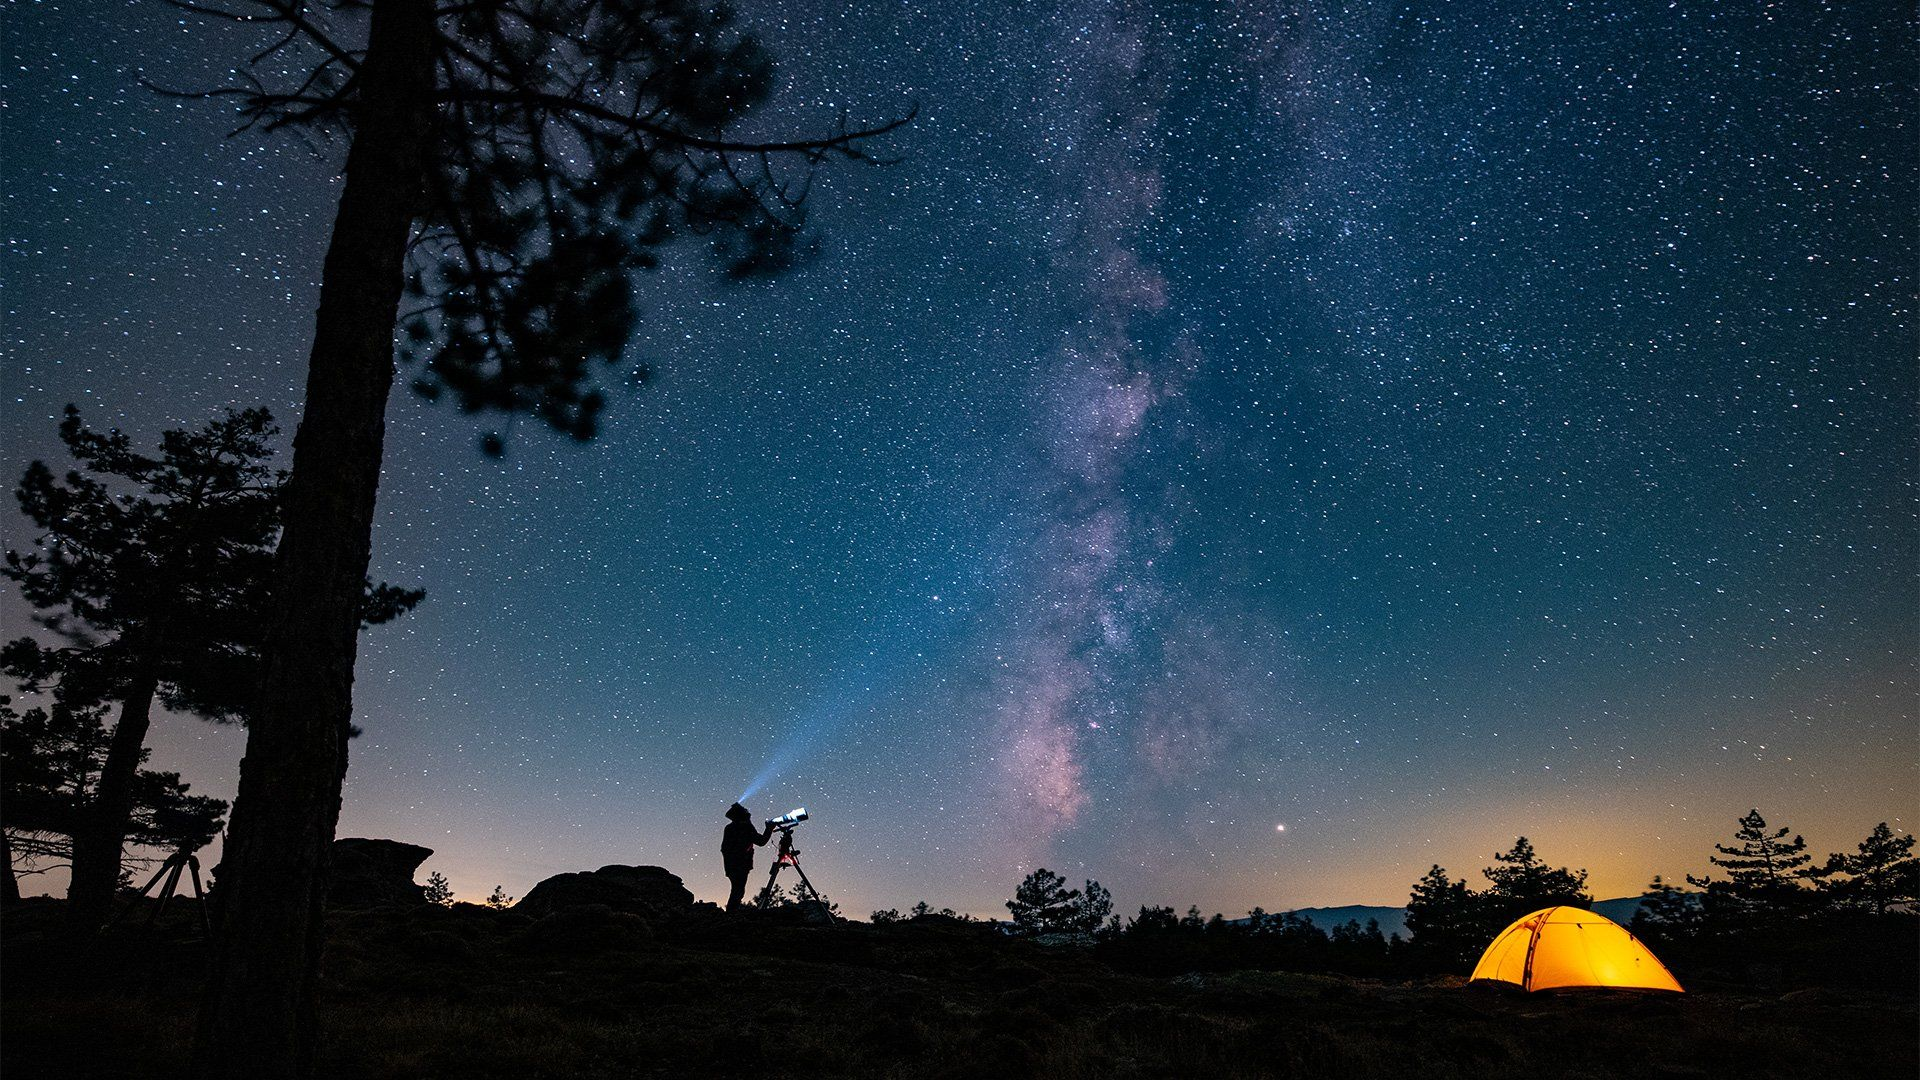 Fergus Kennedy photographs the Milky Way